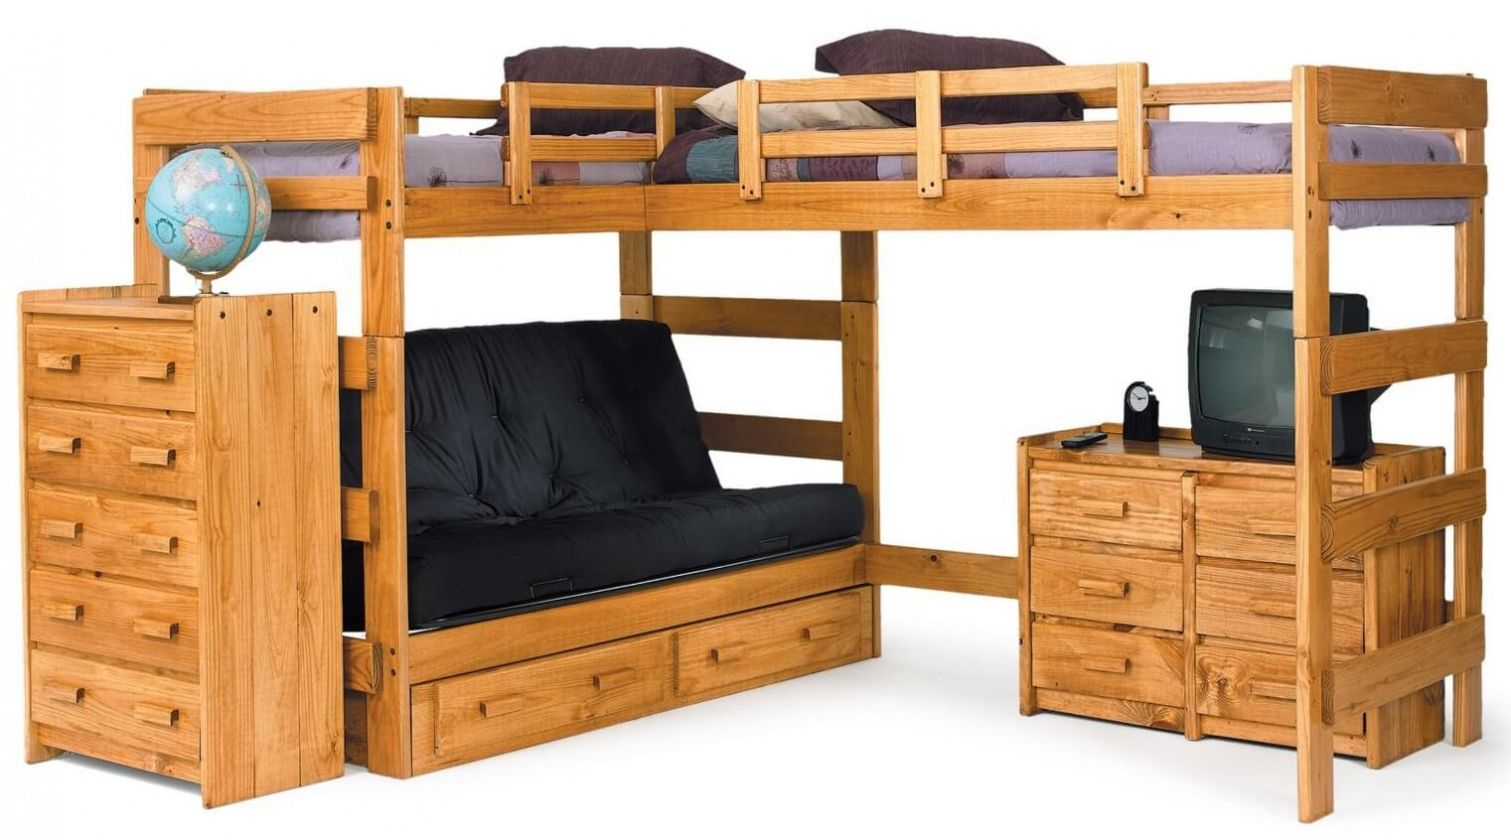 Wooden Bunk Bed with Futon Best Paint for Interior Check